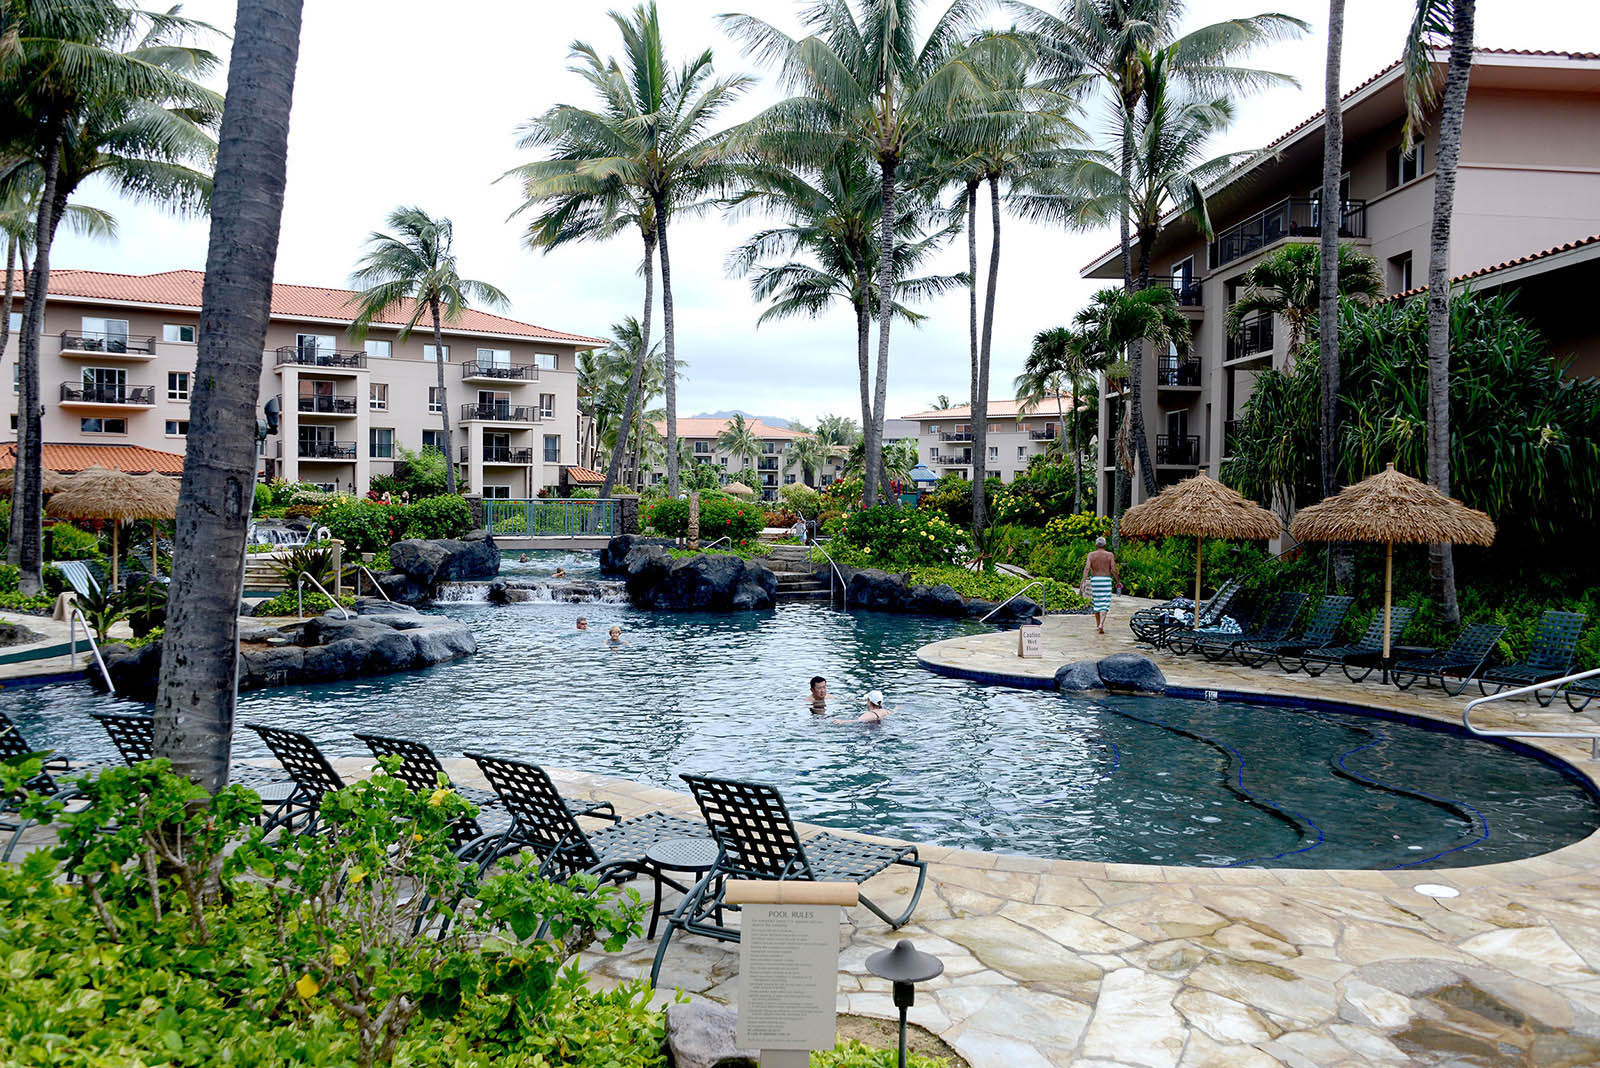 Marriott Waiohai Beach Club, Kauai timeshare resales